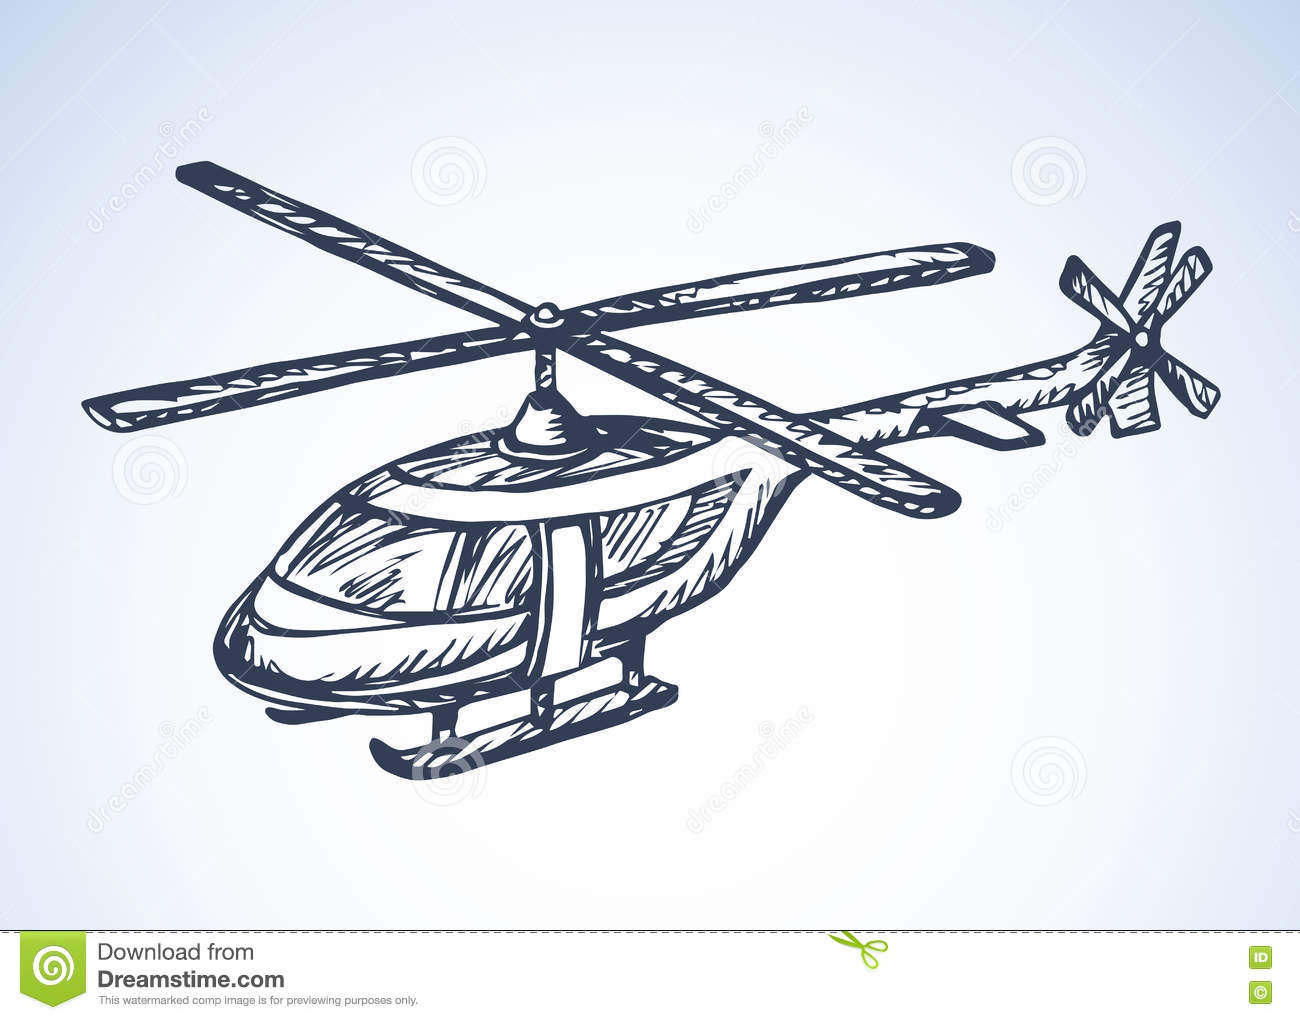 remote control rescue helicopter with Stock Illustration Helicopter Vector Drawing Modern Turning Radio Remote Rc Model White Background Freehand Outline Ink Hand Drawn Picture Web Image73125225 on A 17270257 likewise Drone Technology Helps Agents Sell Houses likewise A 15179655 furthermore Star Wars 7 La Nouvelle Collection De Jouets Devoilee together with Product.